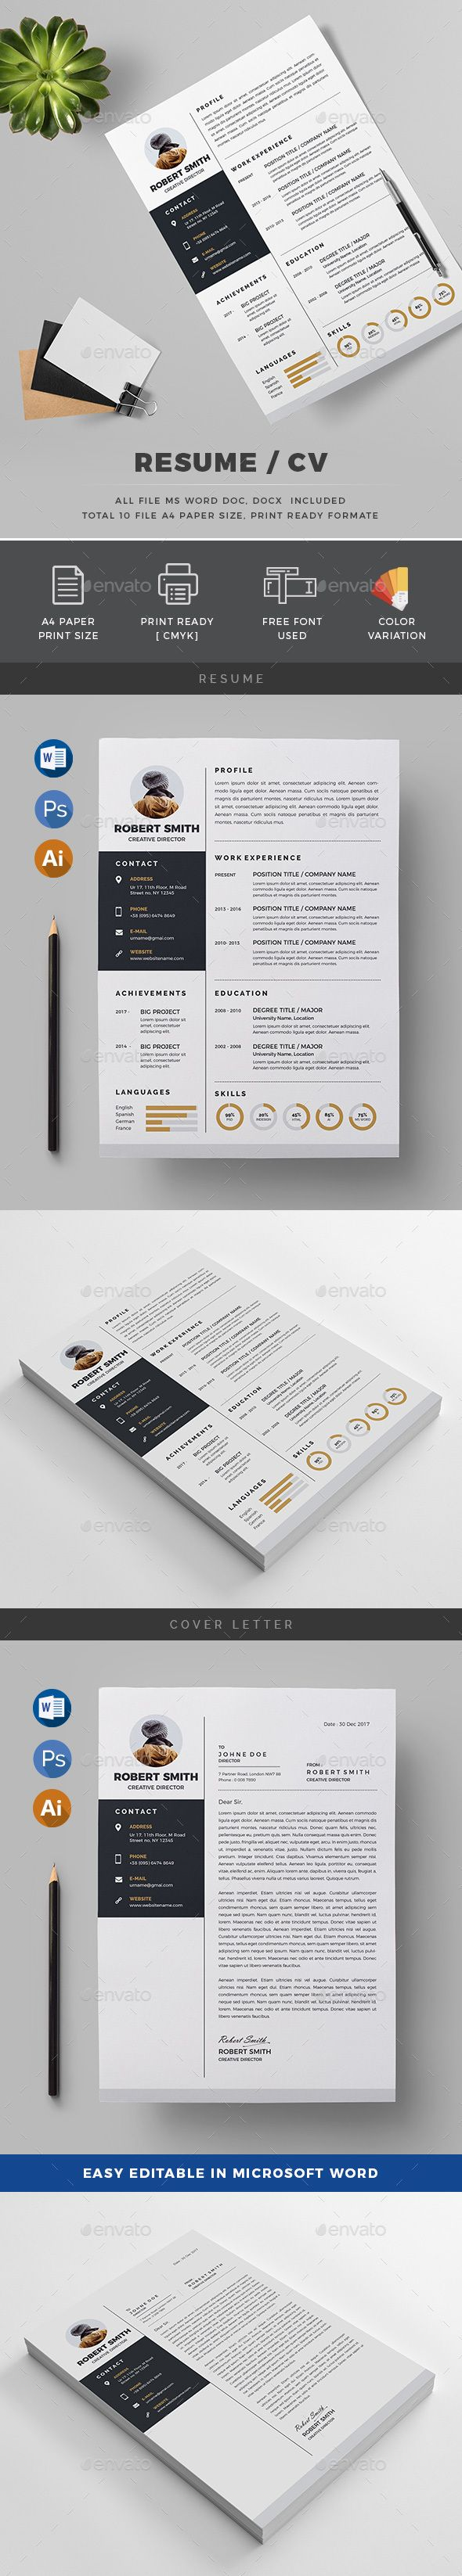 Resume | Template, Stationery design and Ai illustrator